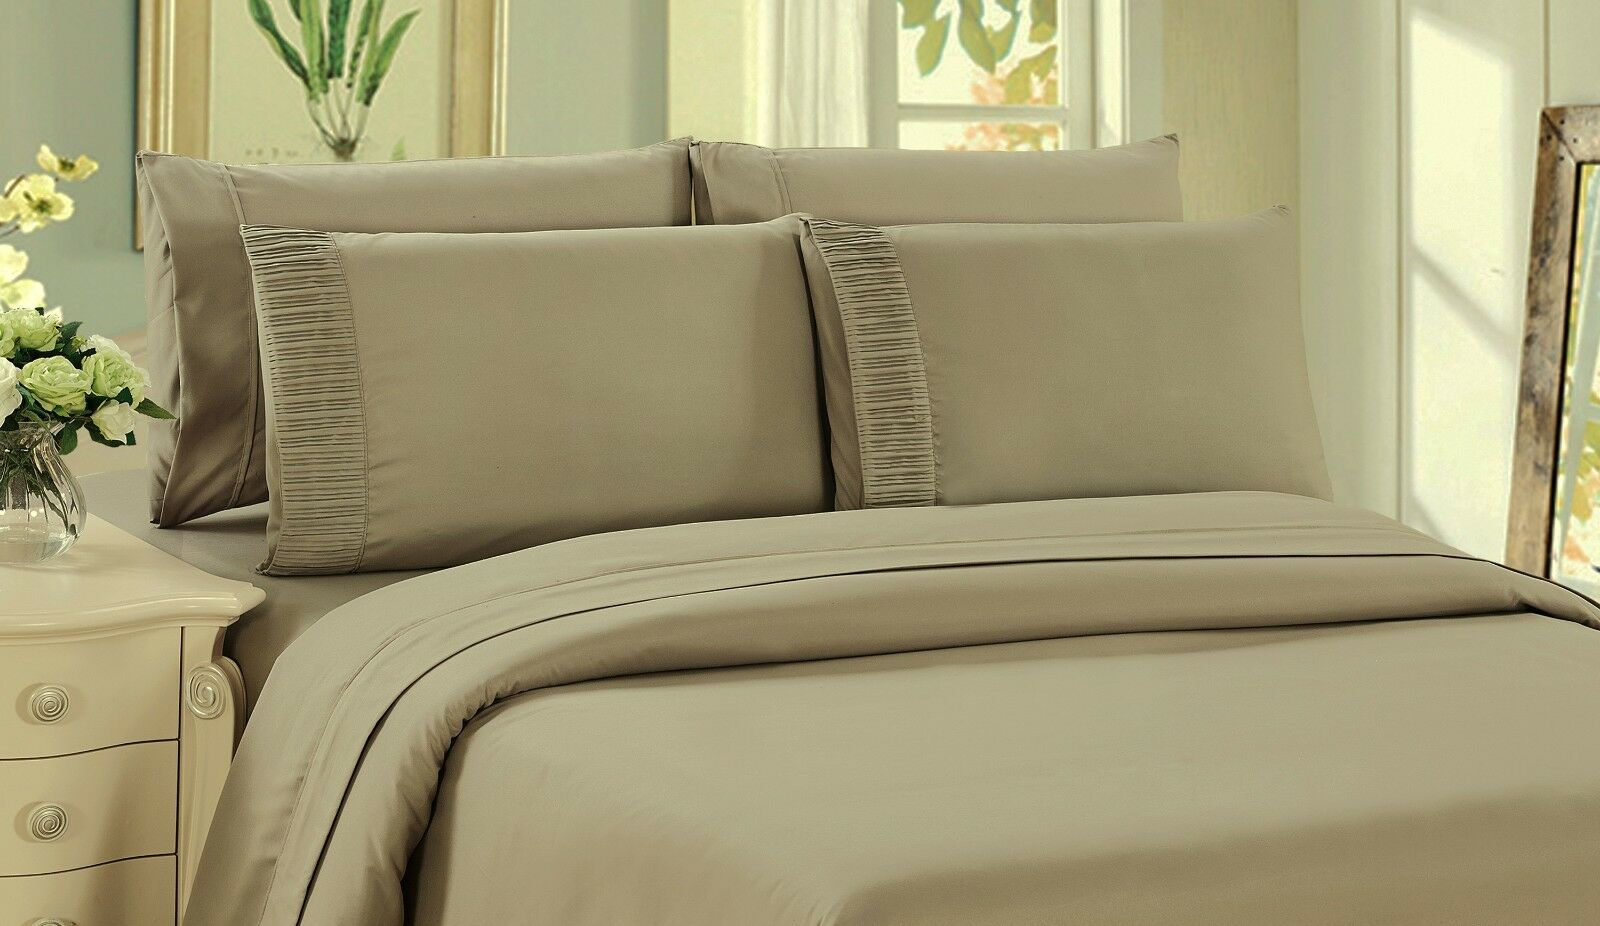 Bamboo Eco-Friendly Soft 3 Piece Duvet Cover Set, Queen Size, Taupe color